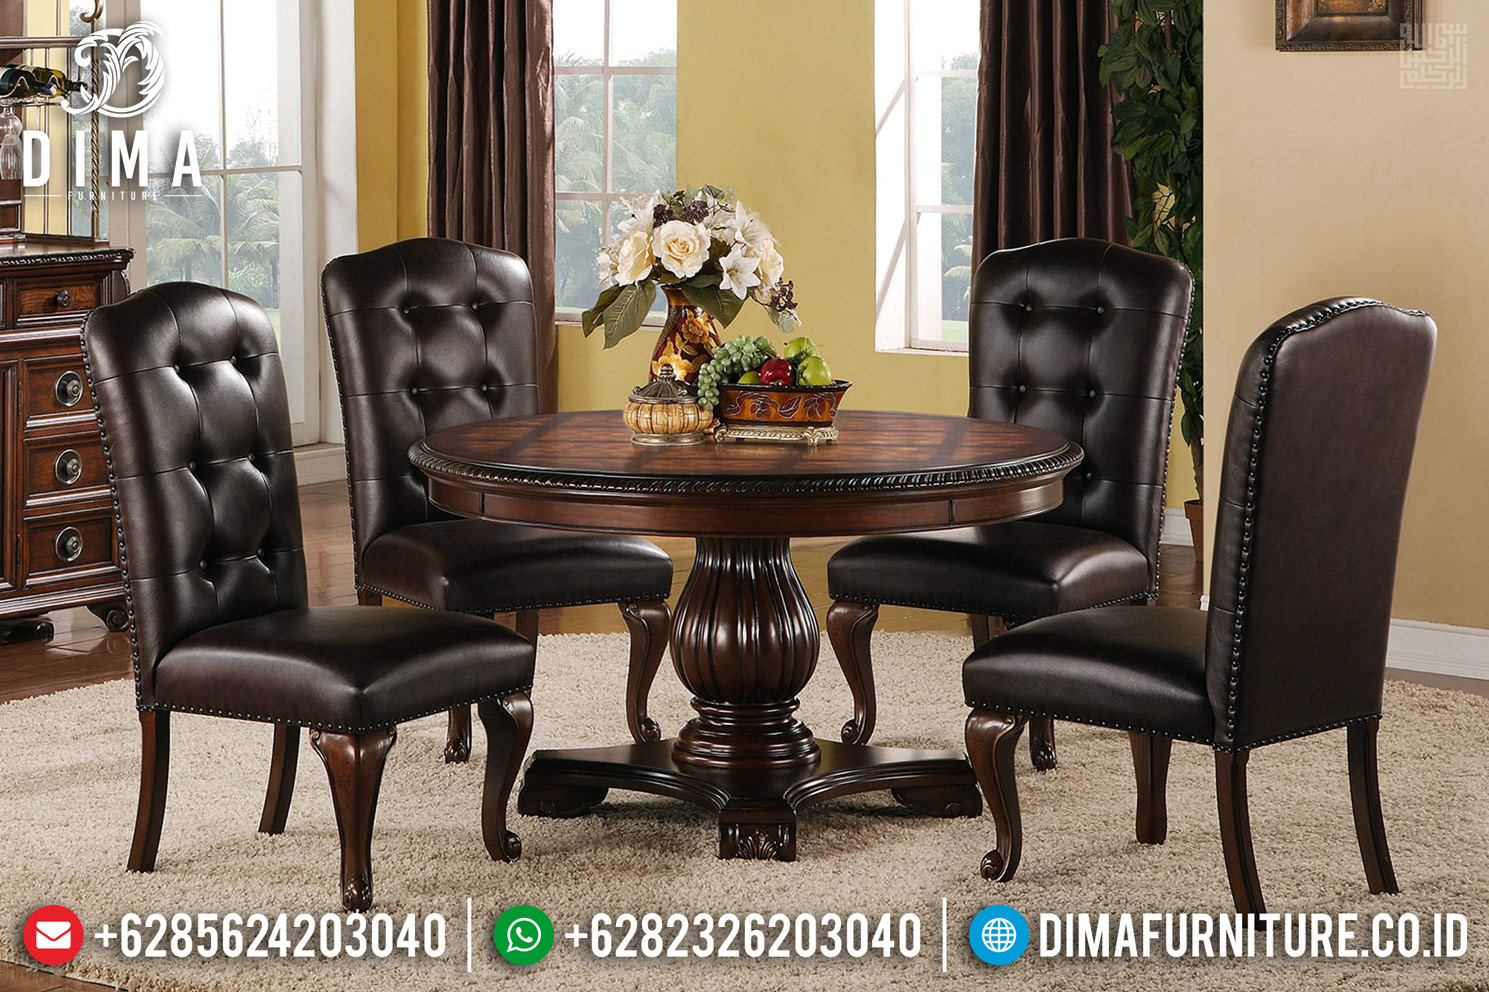 Jual Meja Makan Minimalis Jati Versailles Oscar Leather Klasik Furniture MM-0726